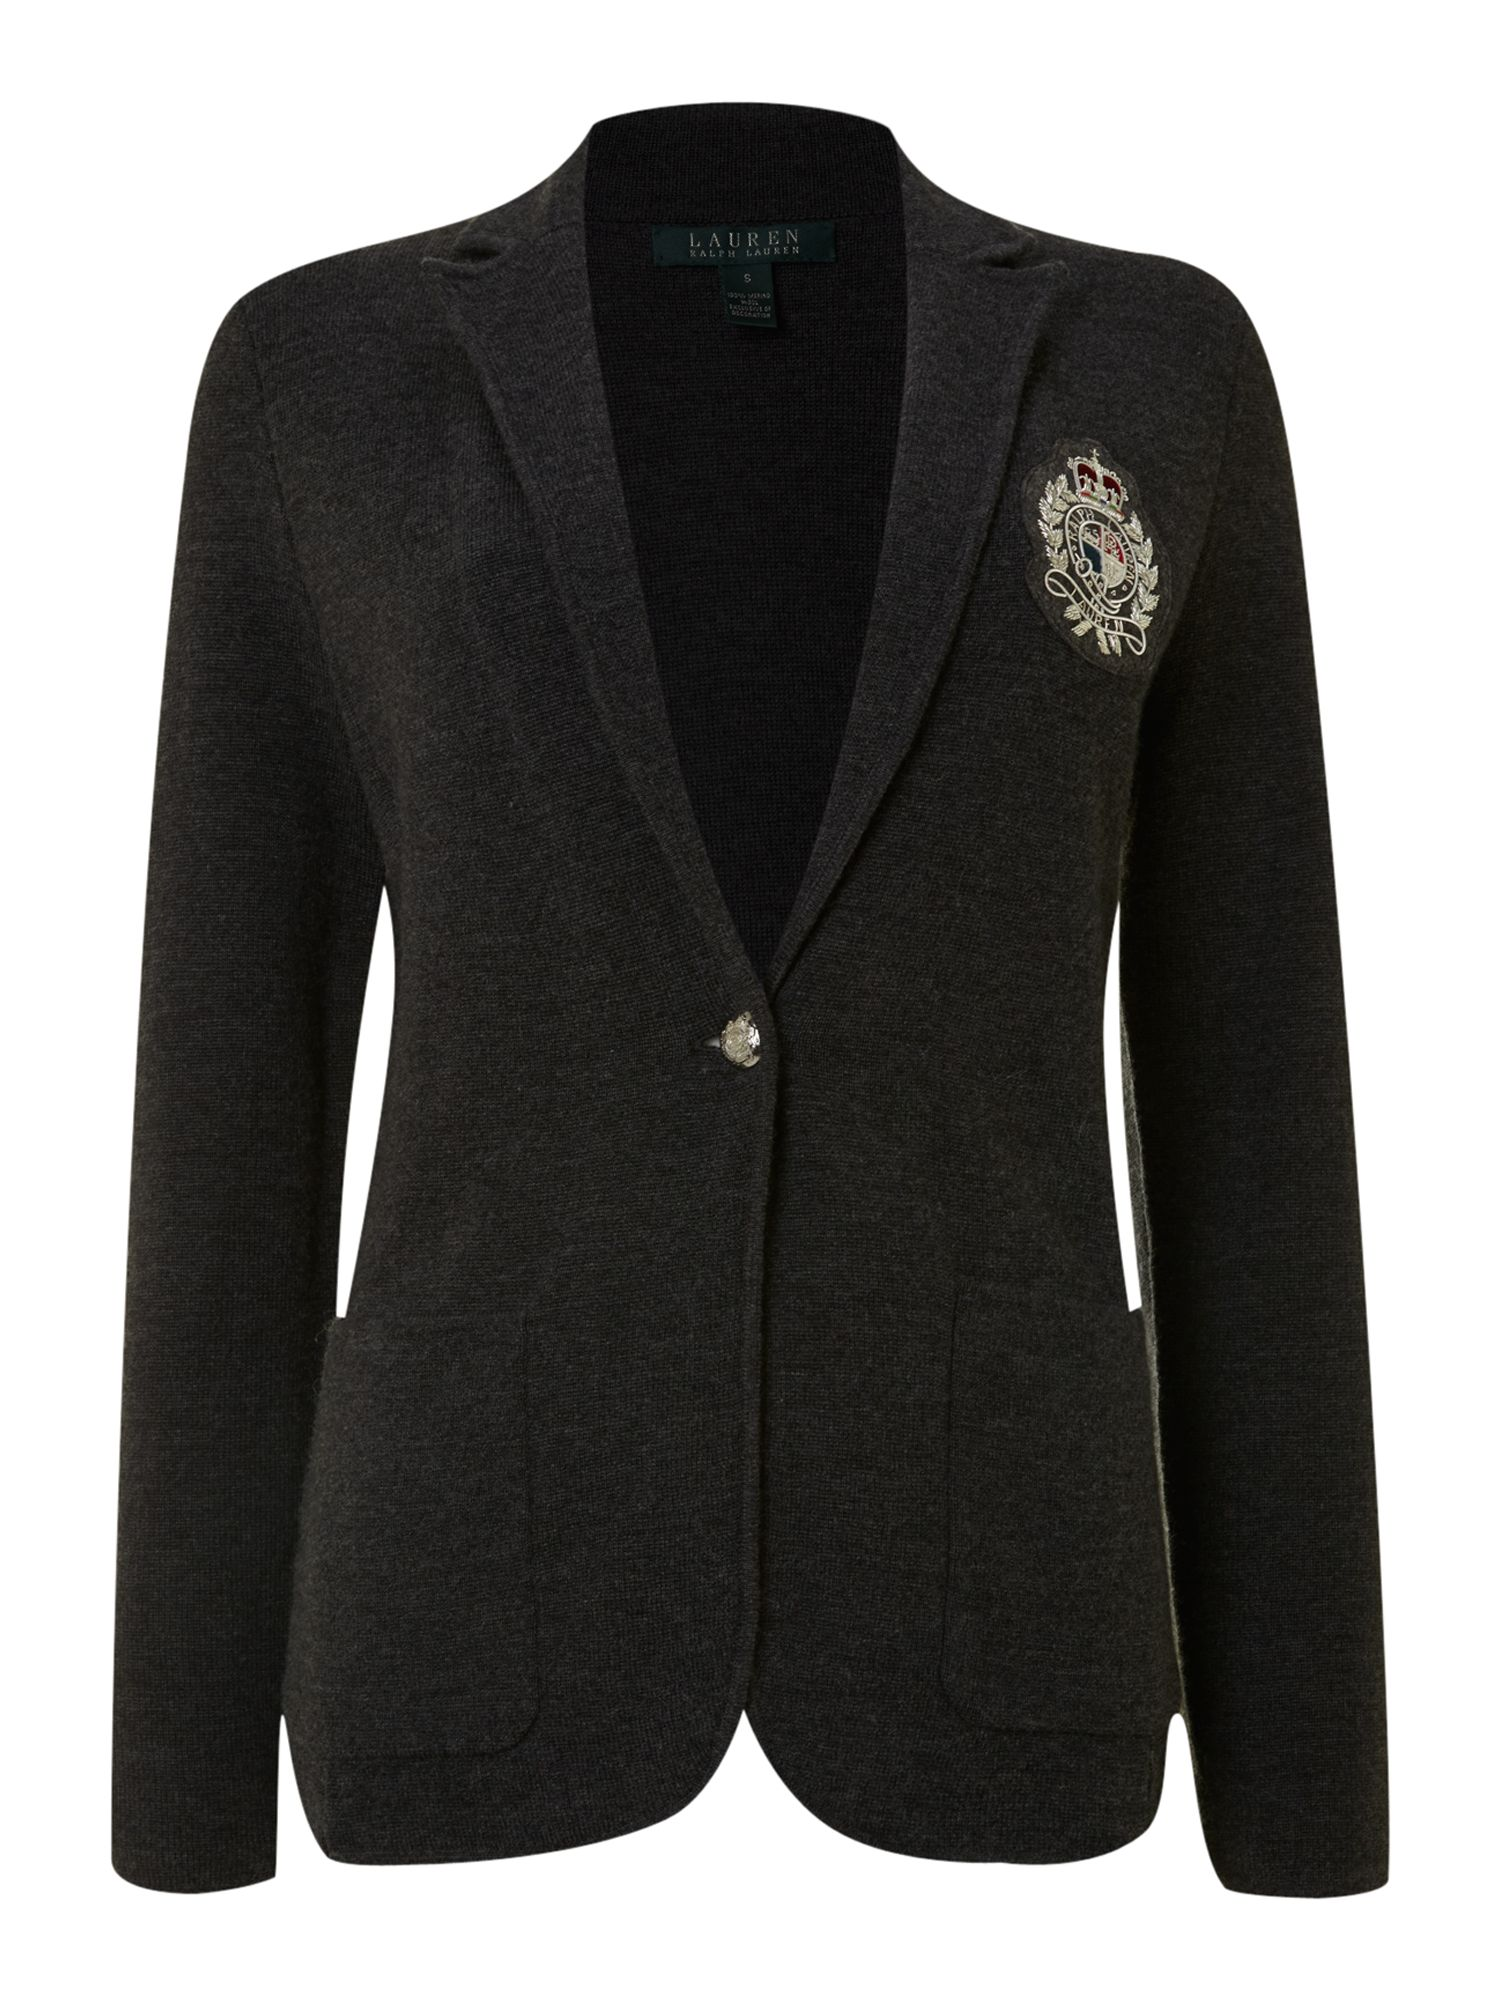 Merino wool blazer with embroidered crest